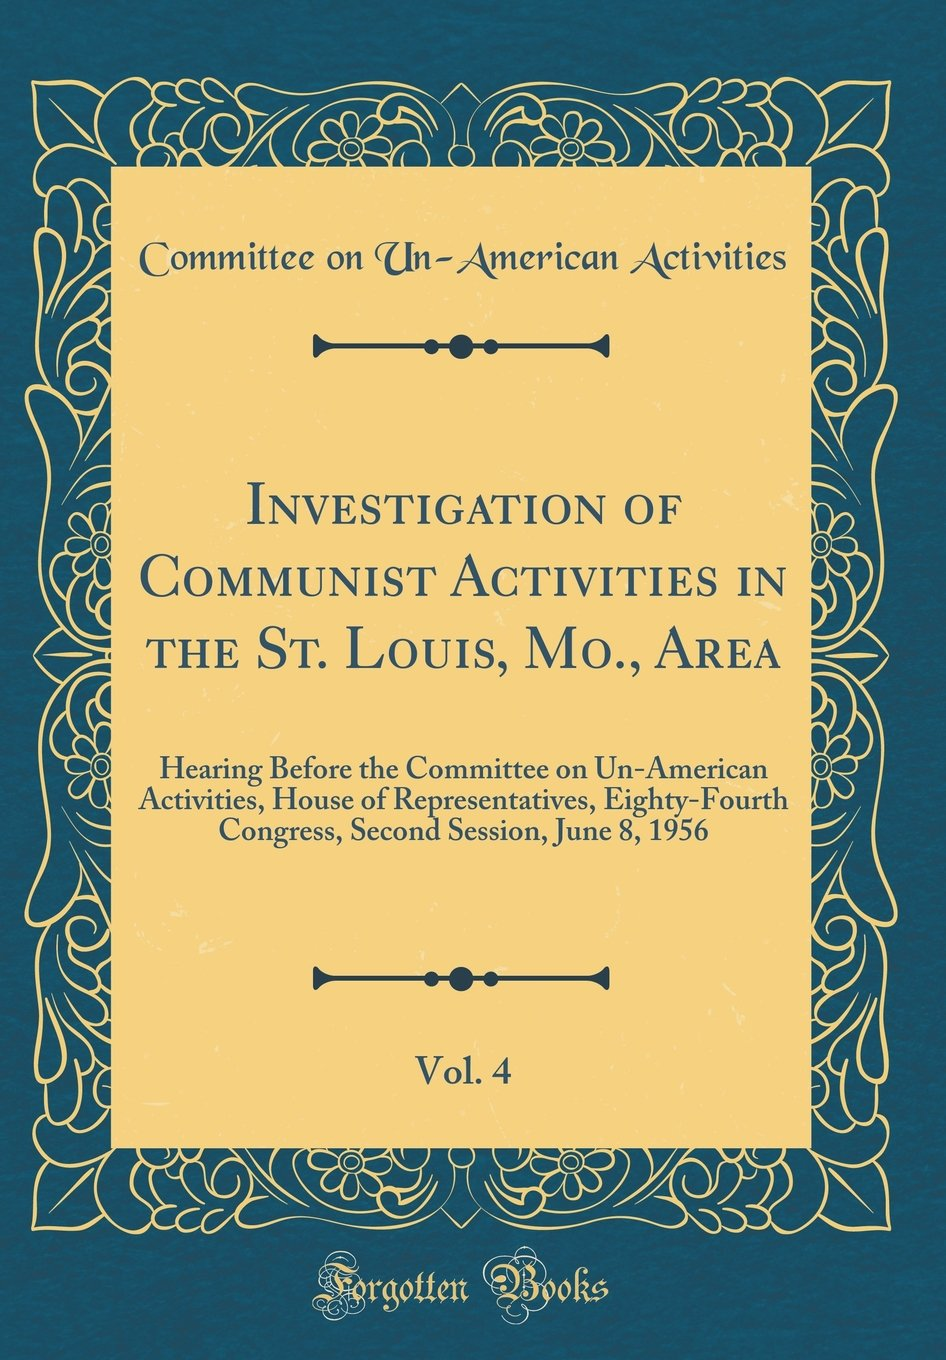 Investigation of Communist Activities in the St. Louis, Mo., Area, Vol. 4: Hearing Before the Committee on Un-American Activities, House of ... Session, June 8, 1956 (Classic Reprint) pdf epub